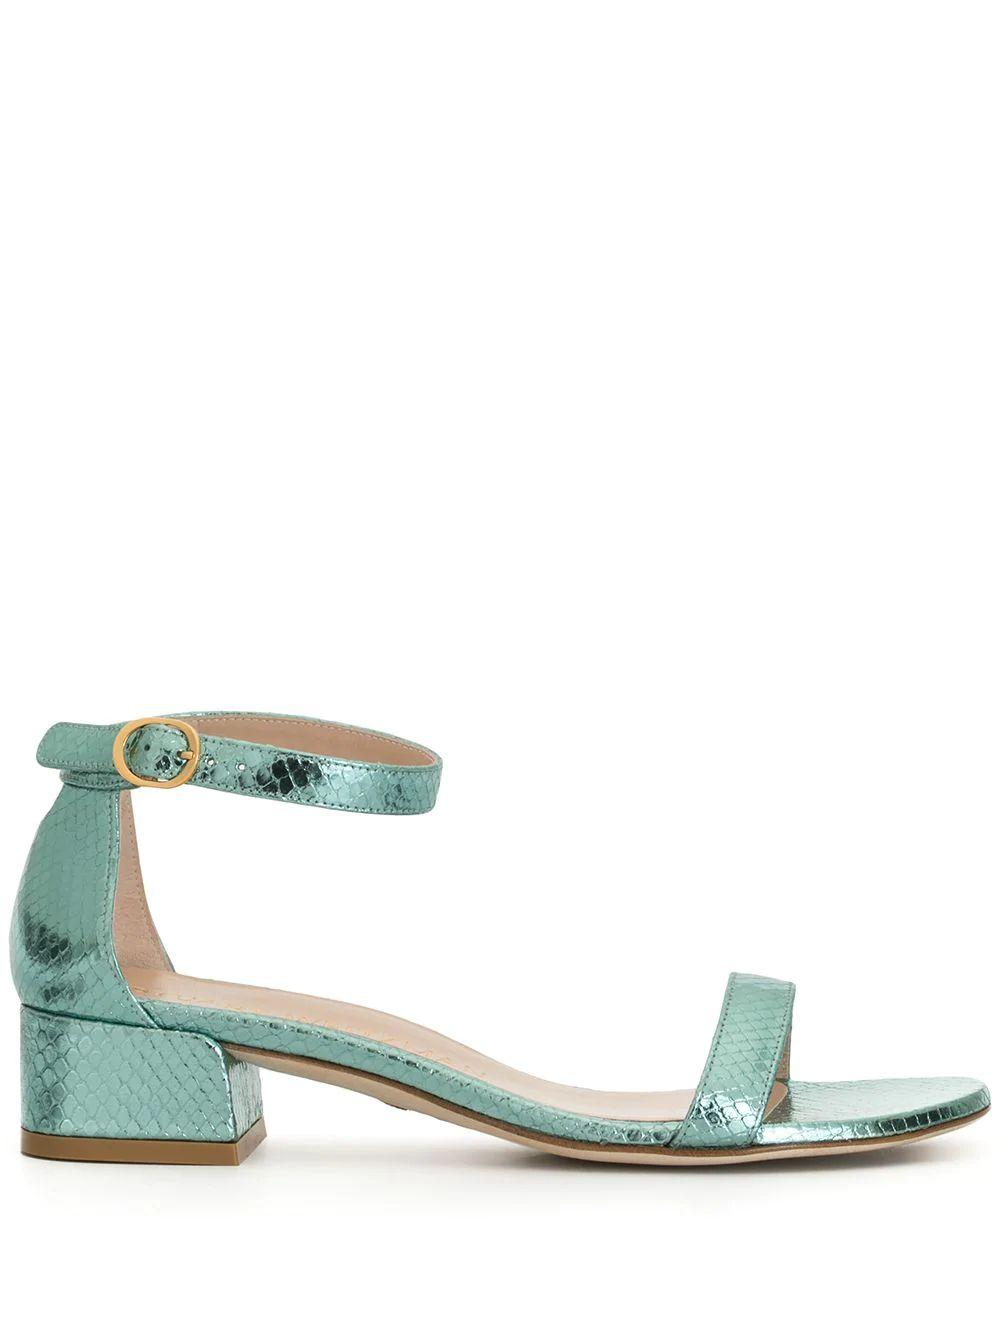 Nudist June Snake Print Block Heel Sandal Item # NUDISTJUNE